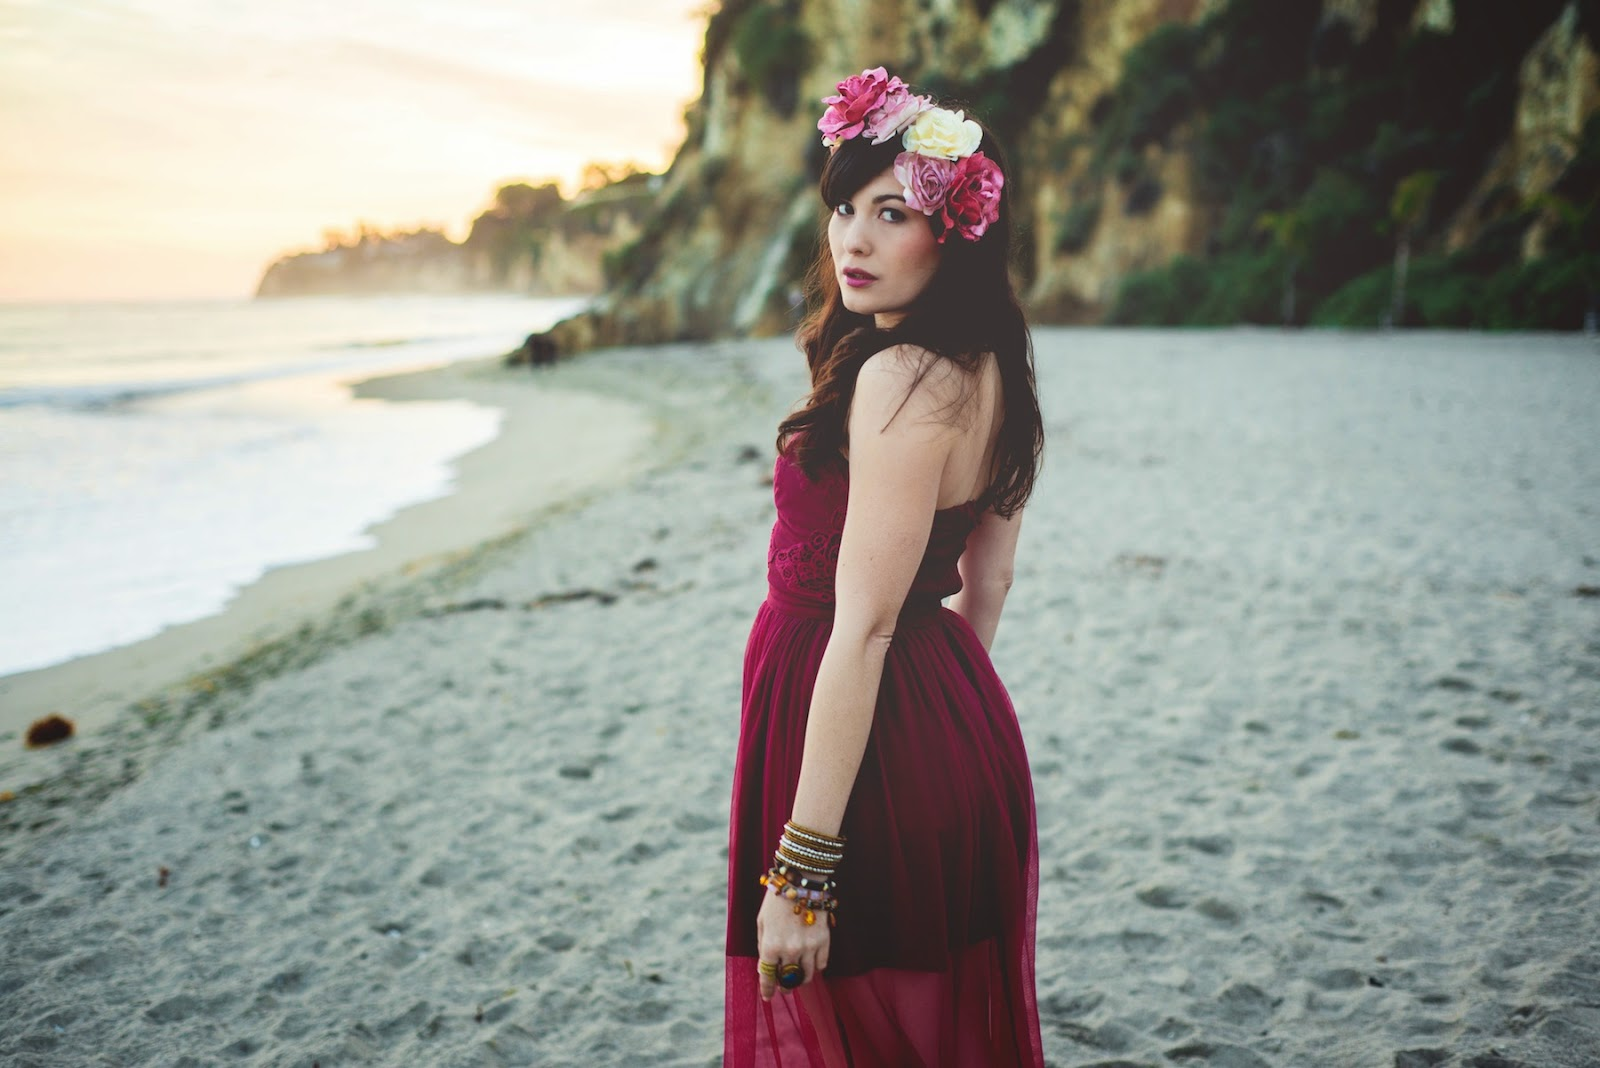 Celeste Thorson Fashion And Lifestyle Boho Beach Flower Crown In